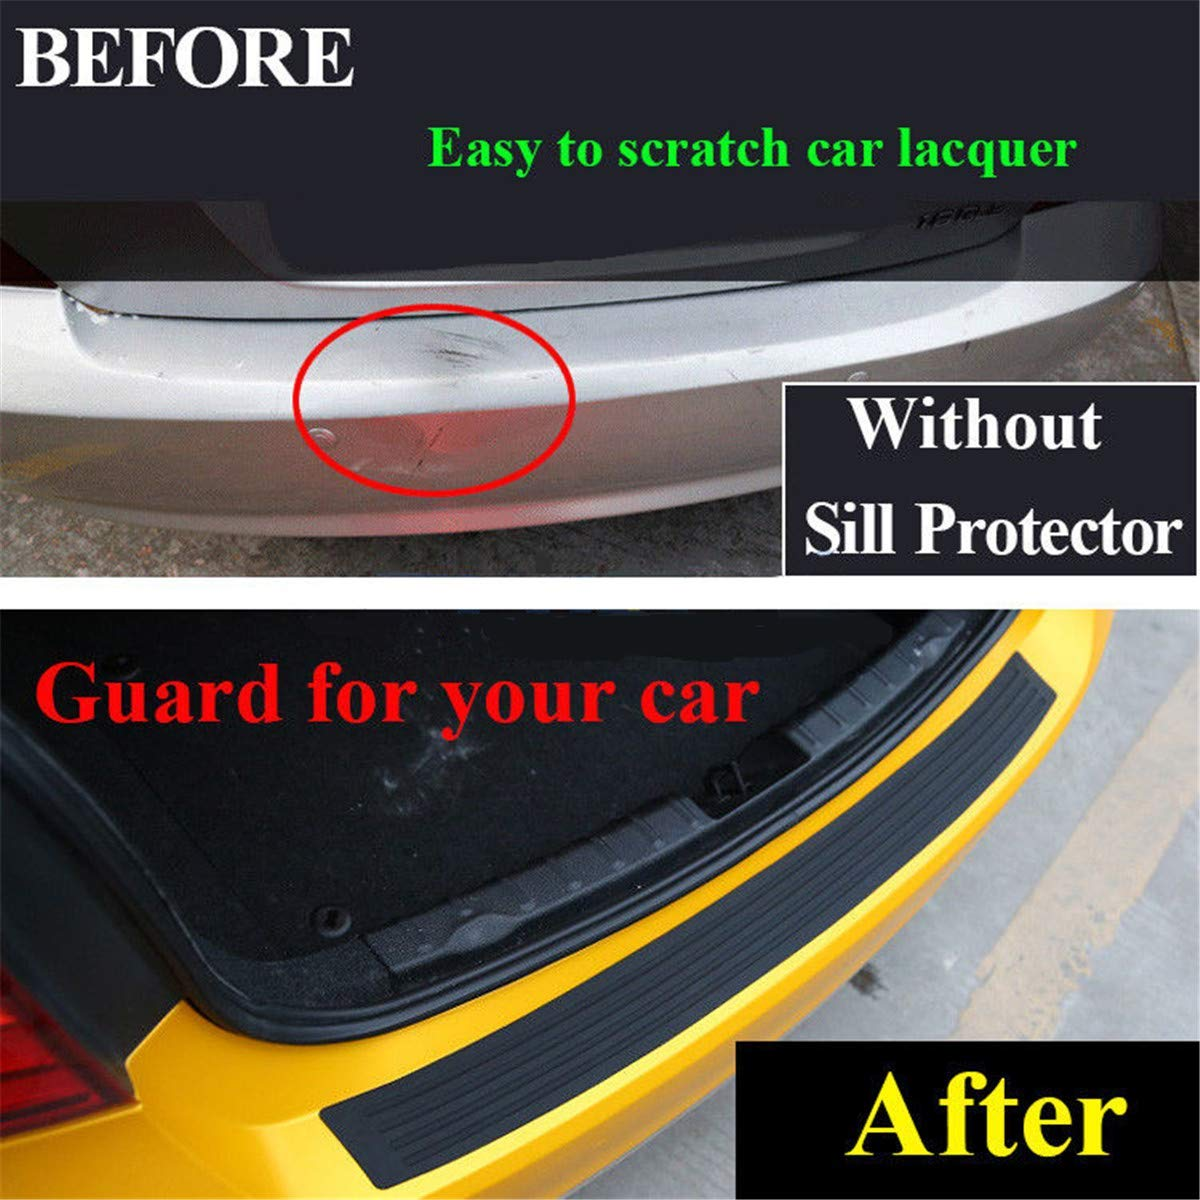 Health mall Bumper Protector Guard Universal Black Rubber Scratch,Resistant Trunk Door Entry Guards Accessory Trim Cover for Car Pickup SUV Truck,Easy D.I.Y Installation 35.5 in